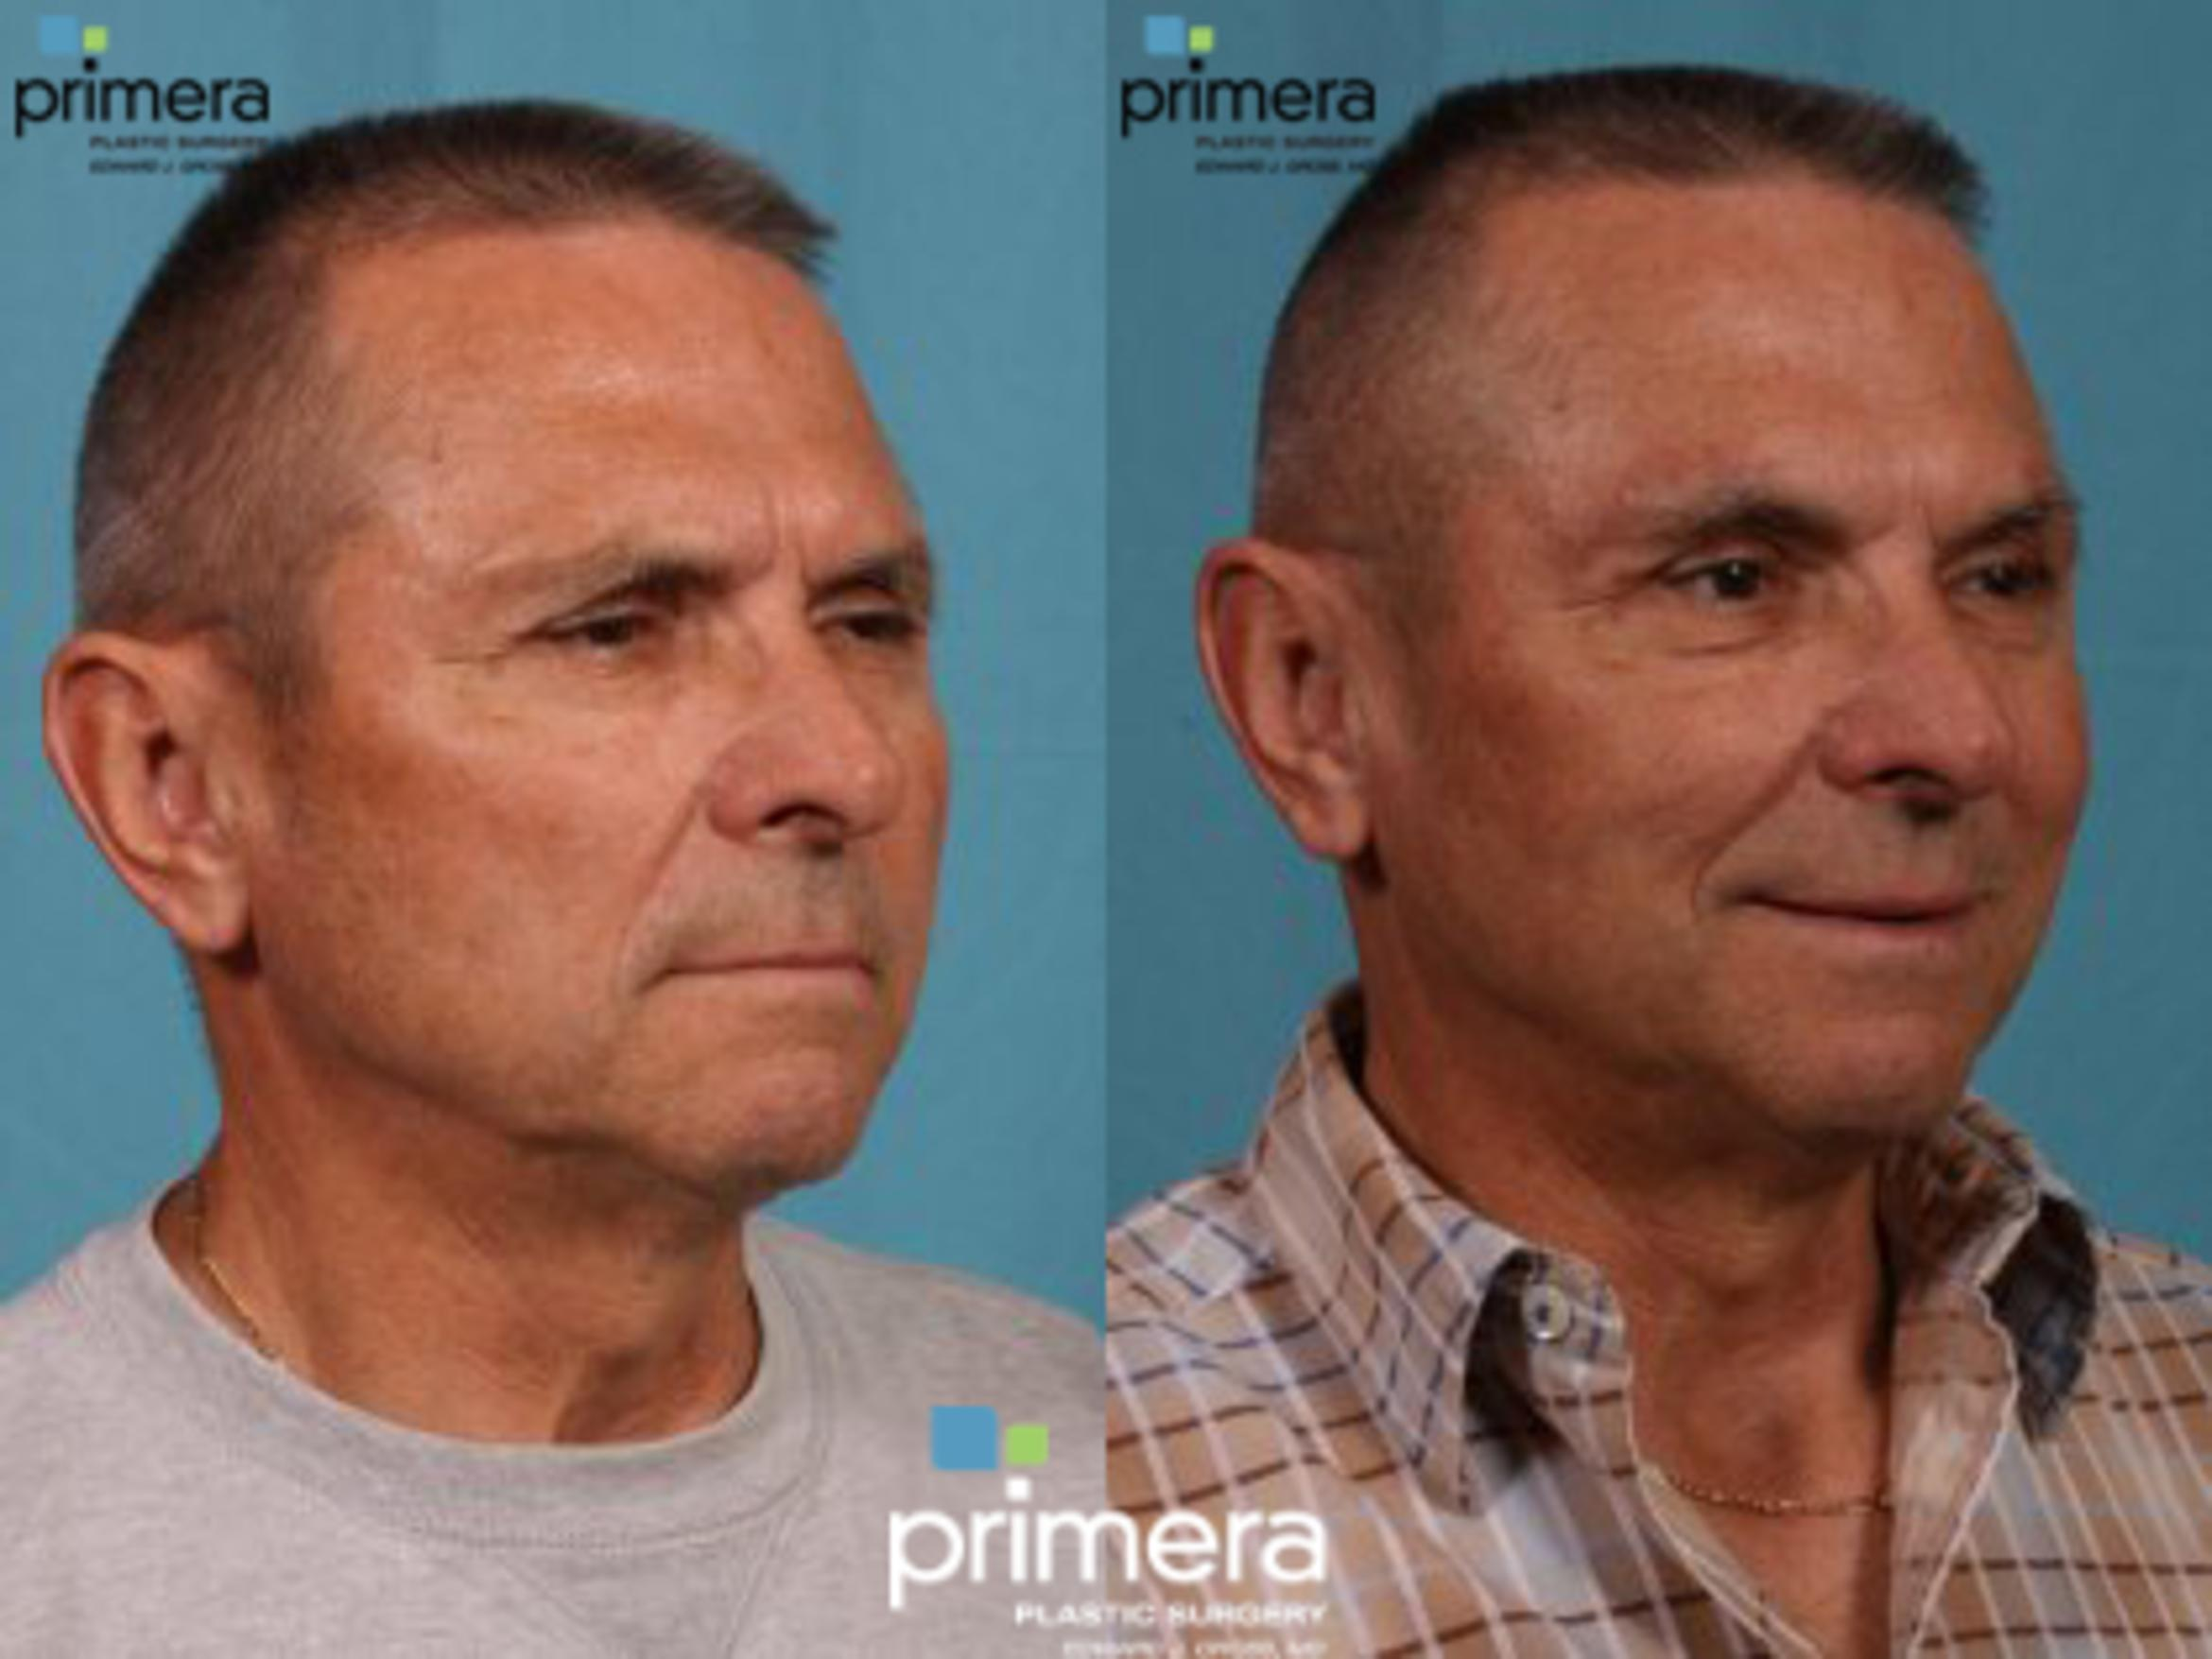 Brow Lift Before & After Photo | Orlando, Florida | Primera Plastic Surgery